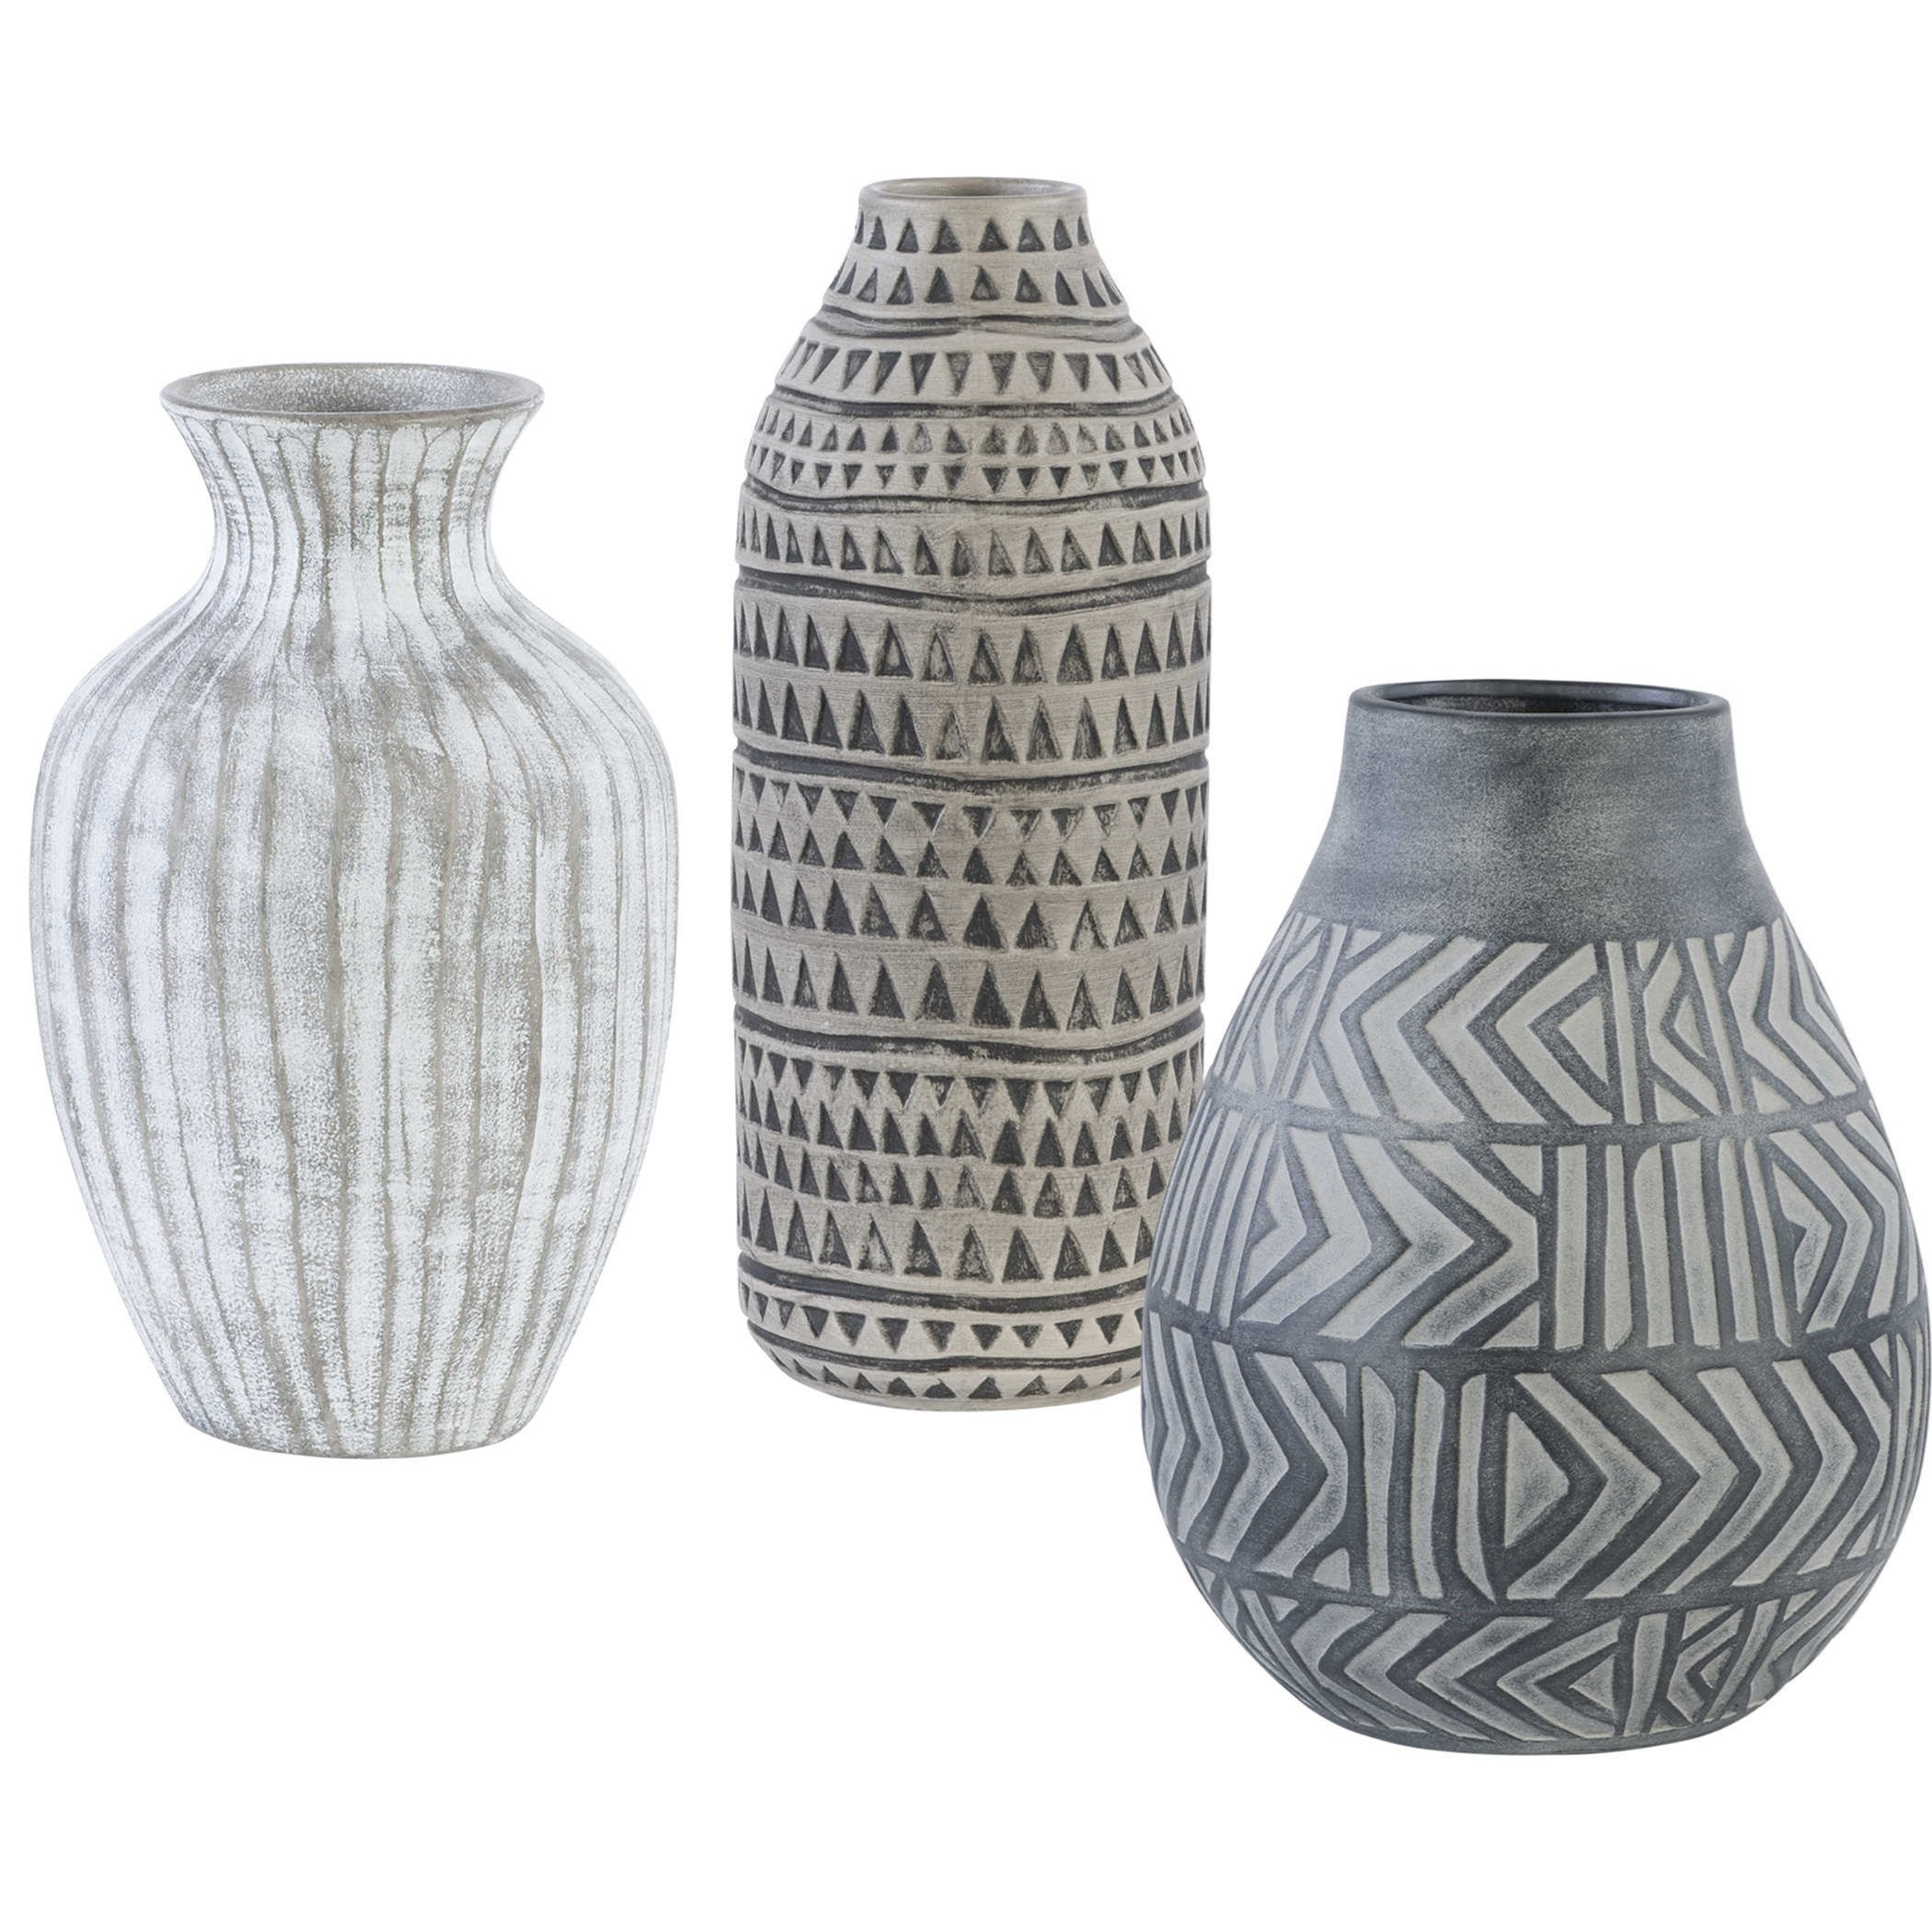 Accessories - Vases and Urns Natchez Geometric Vases, S/3 by Uttermost at Mueller Furniture